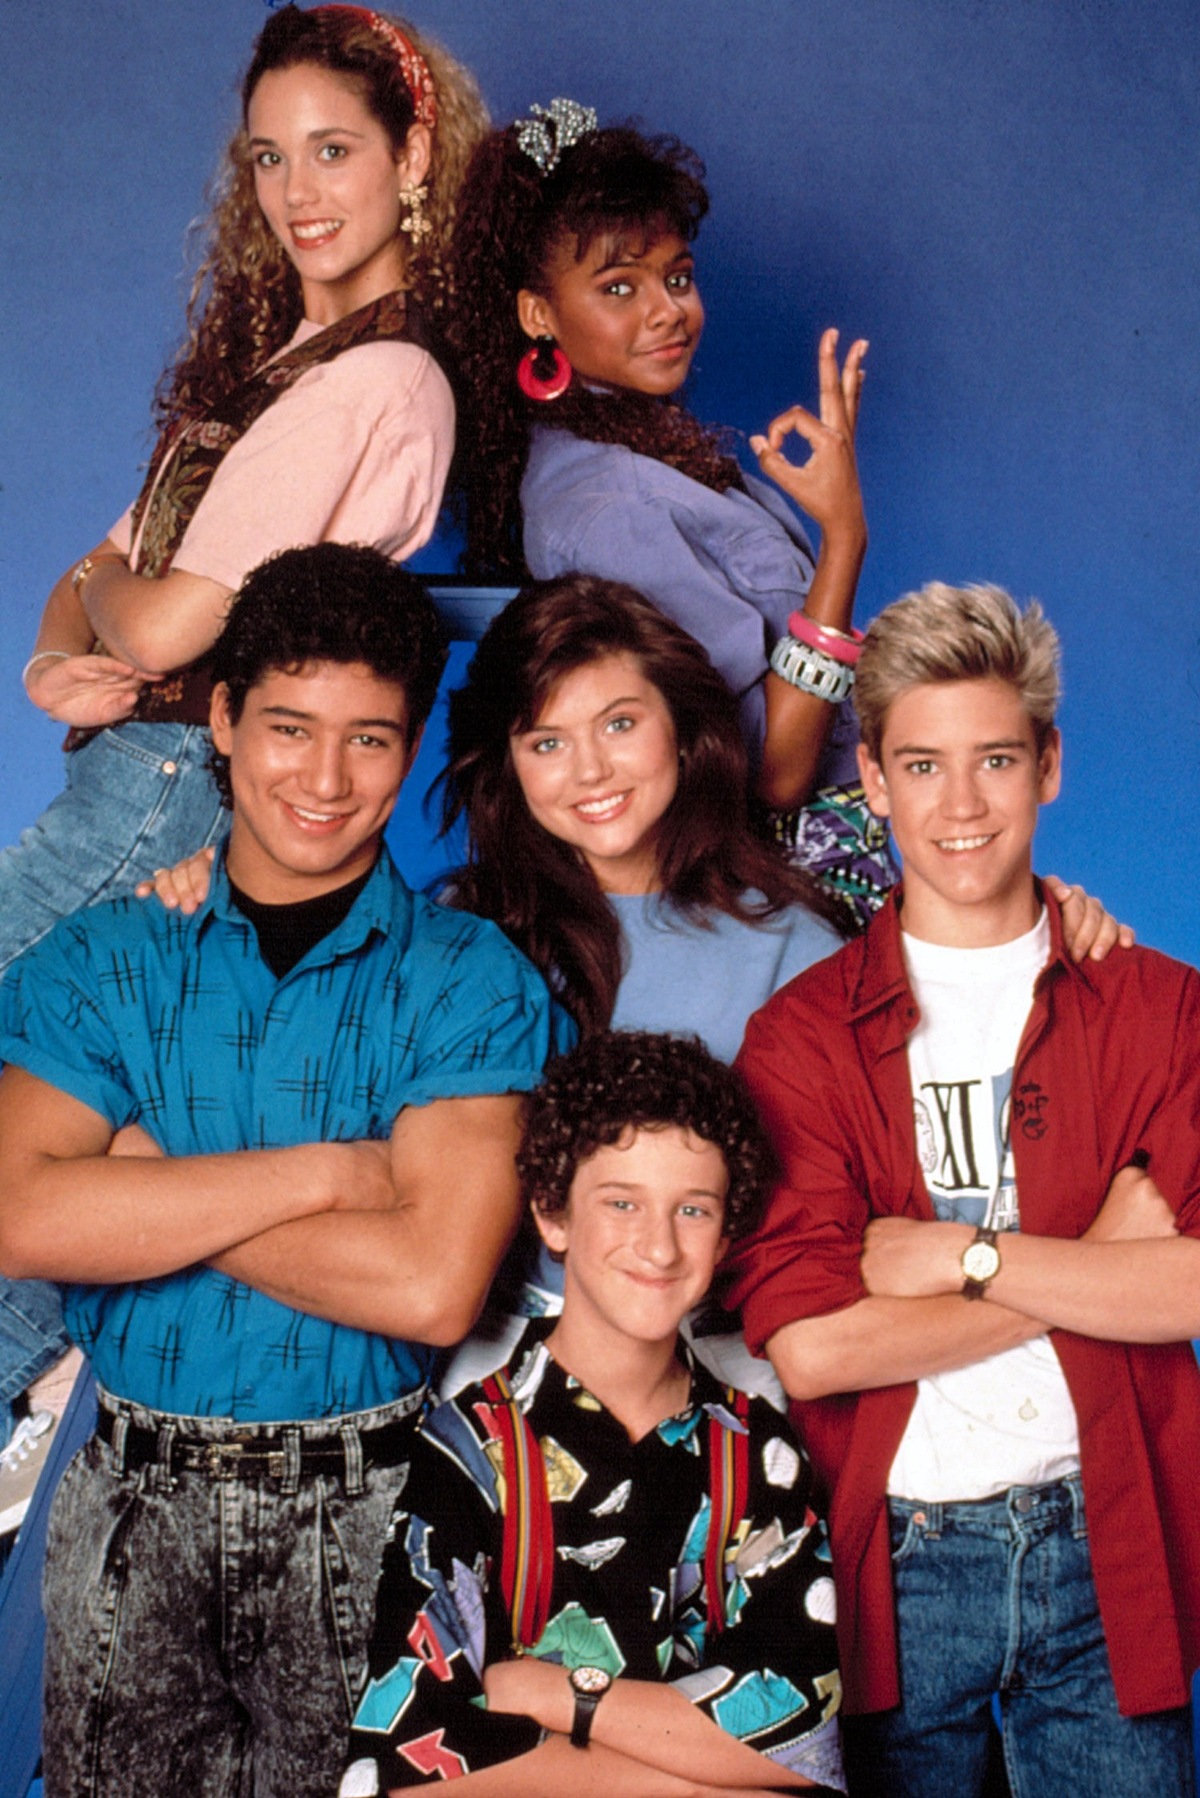 INTRO 1 Remember Saved By The Bell? Here's What The Cast Look Like Today!